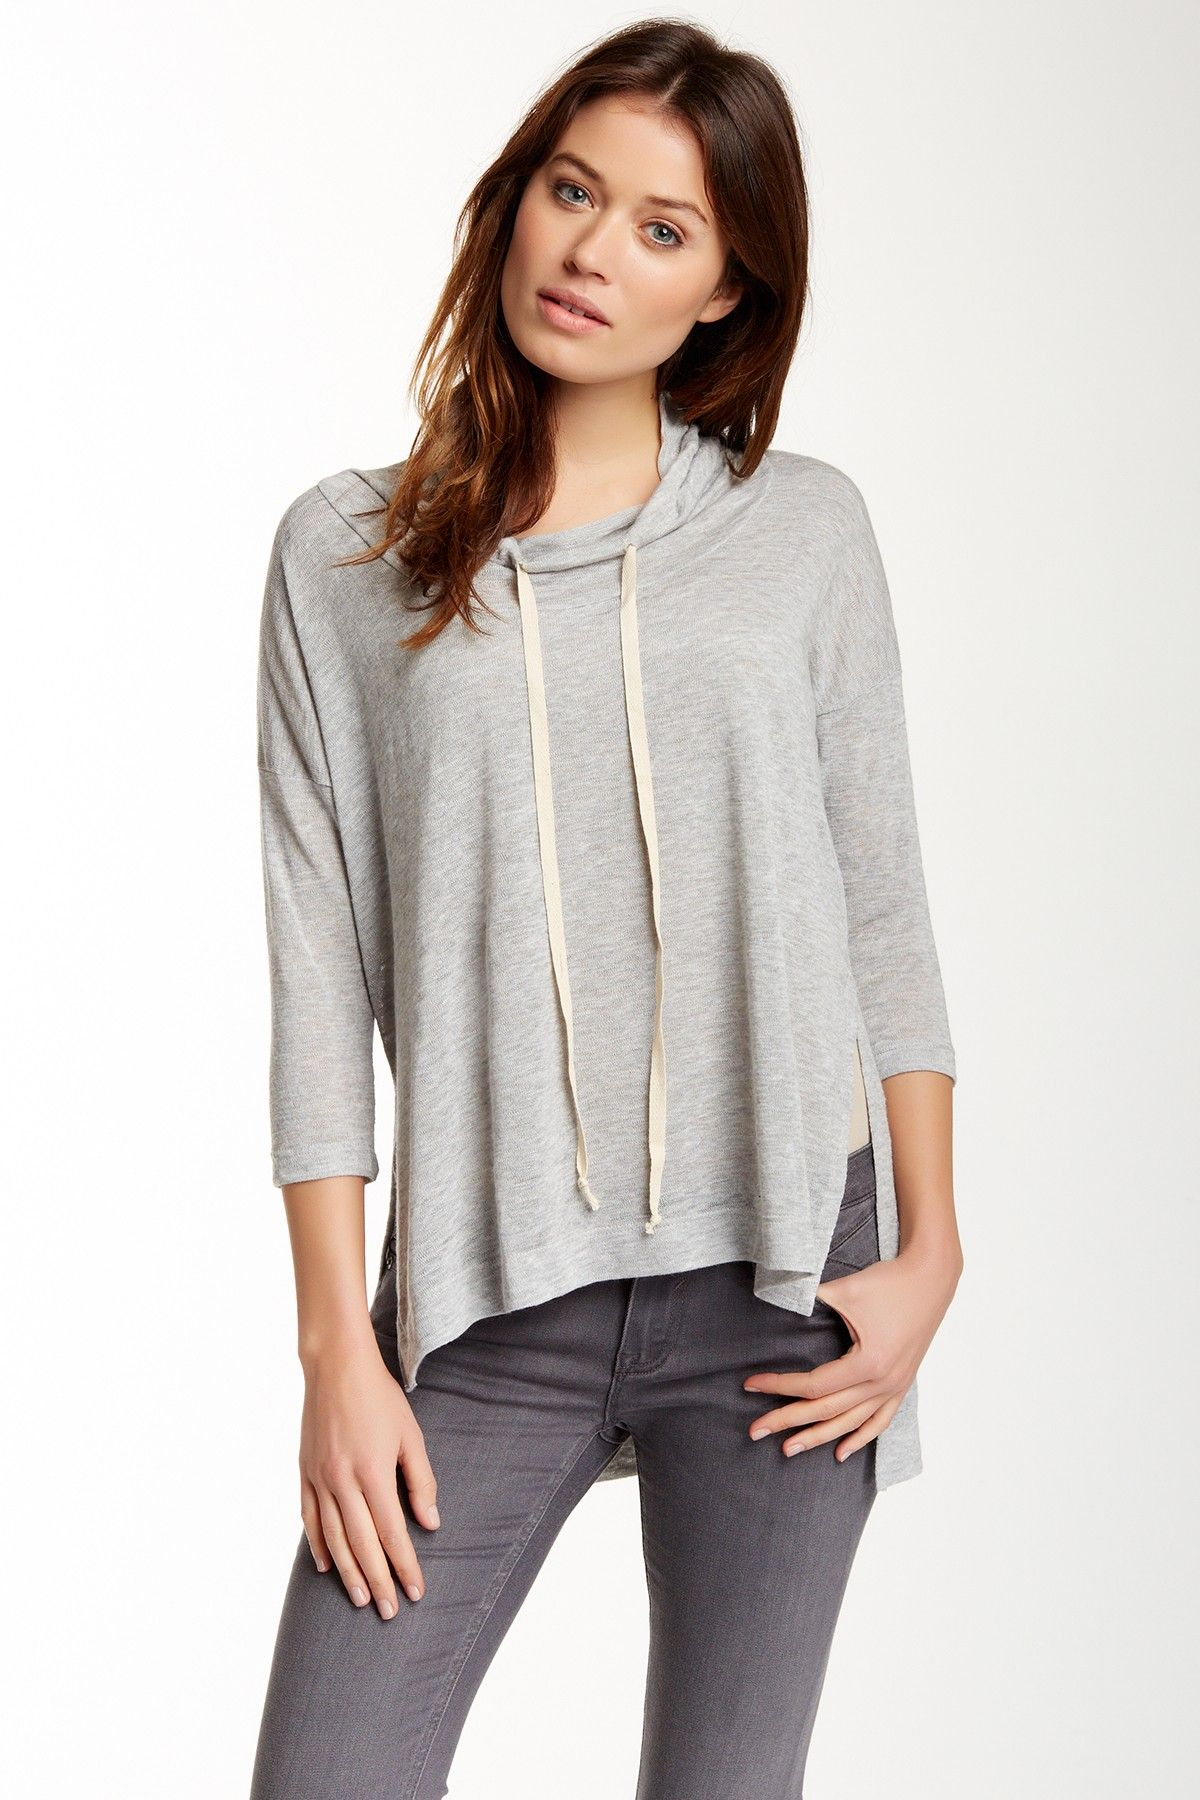 H.I.P. | Cowl Neck Hooded Sweater | Cowl neck, Cowl neck sweaters ...